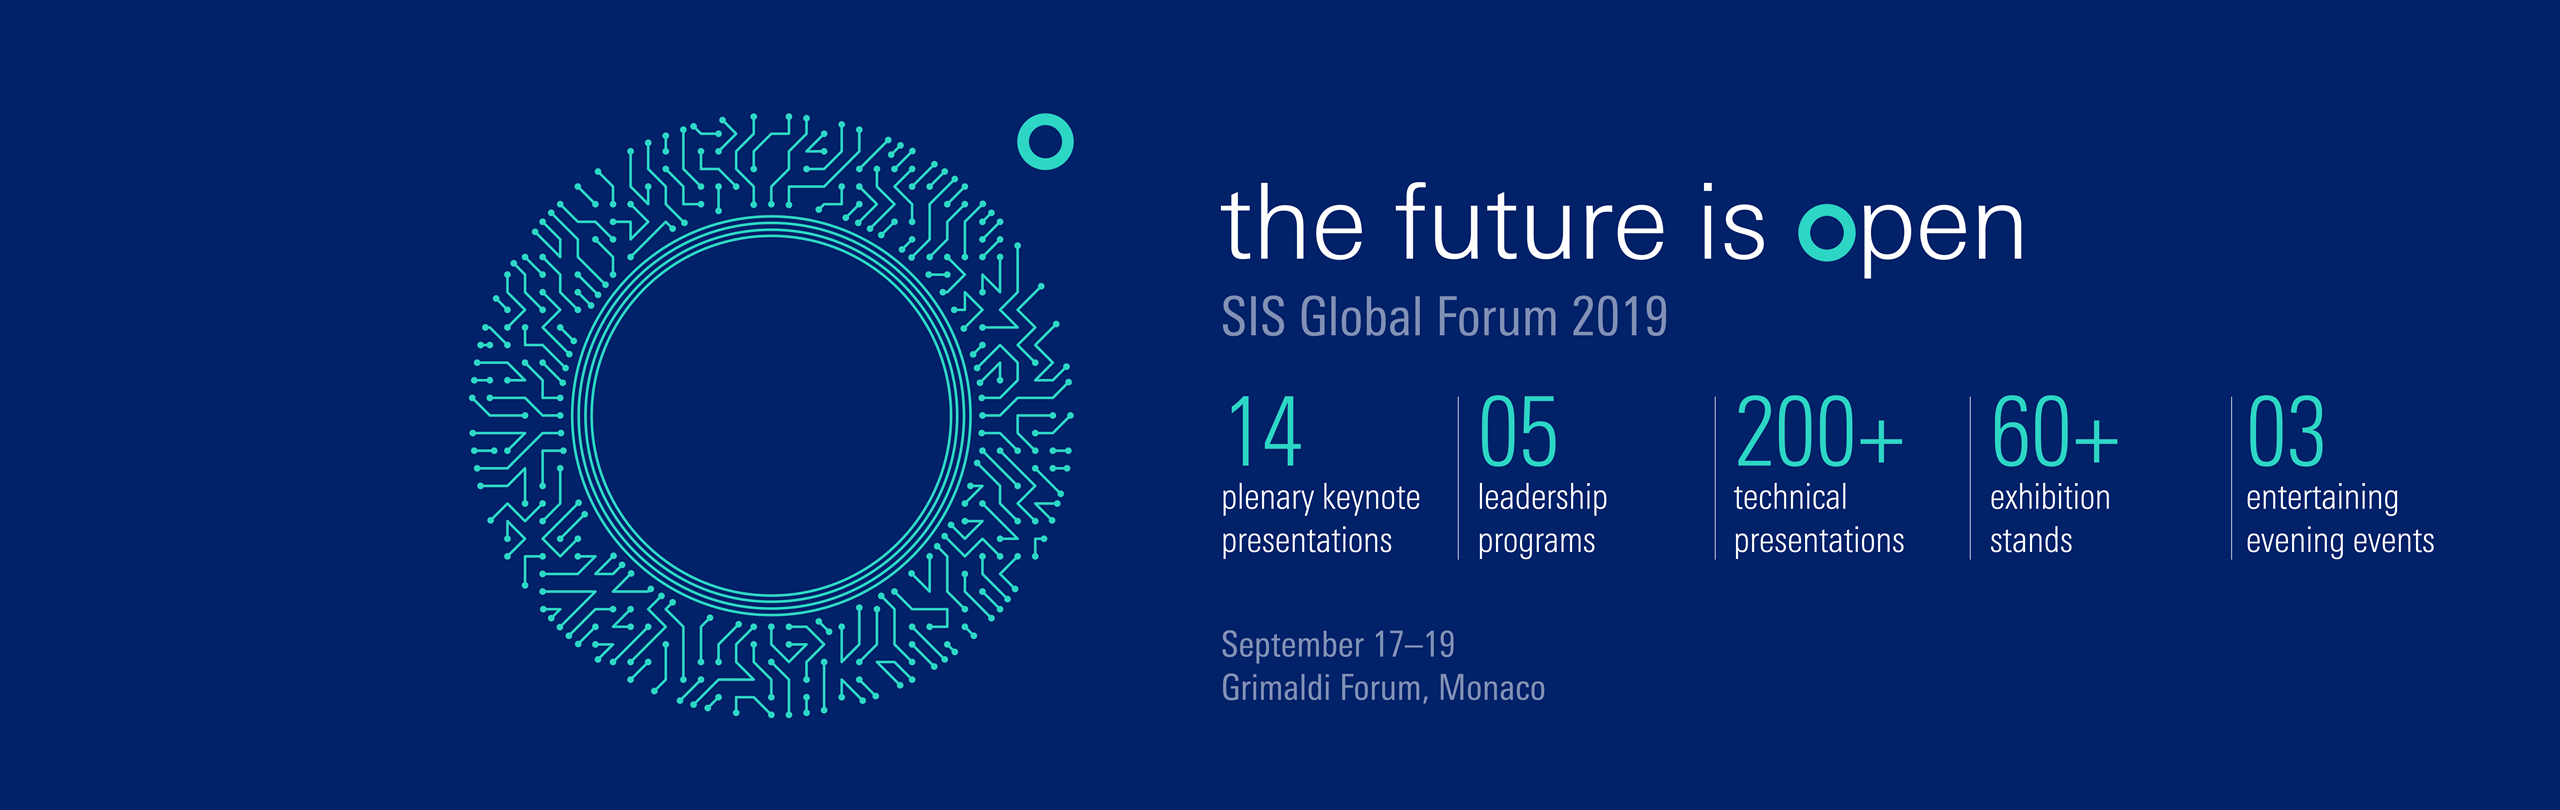 SIS Global Forum 2019